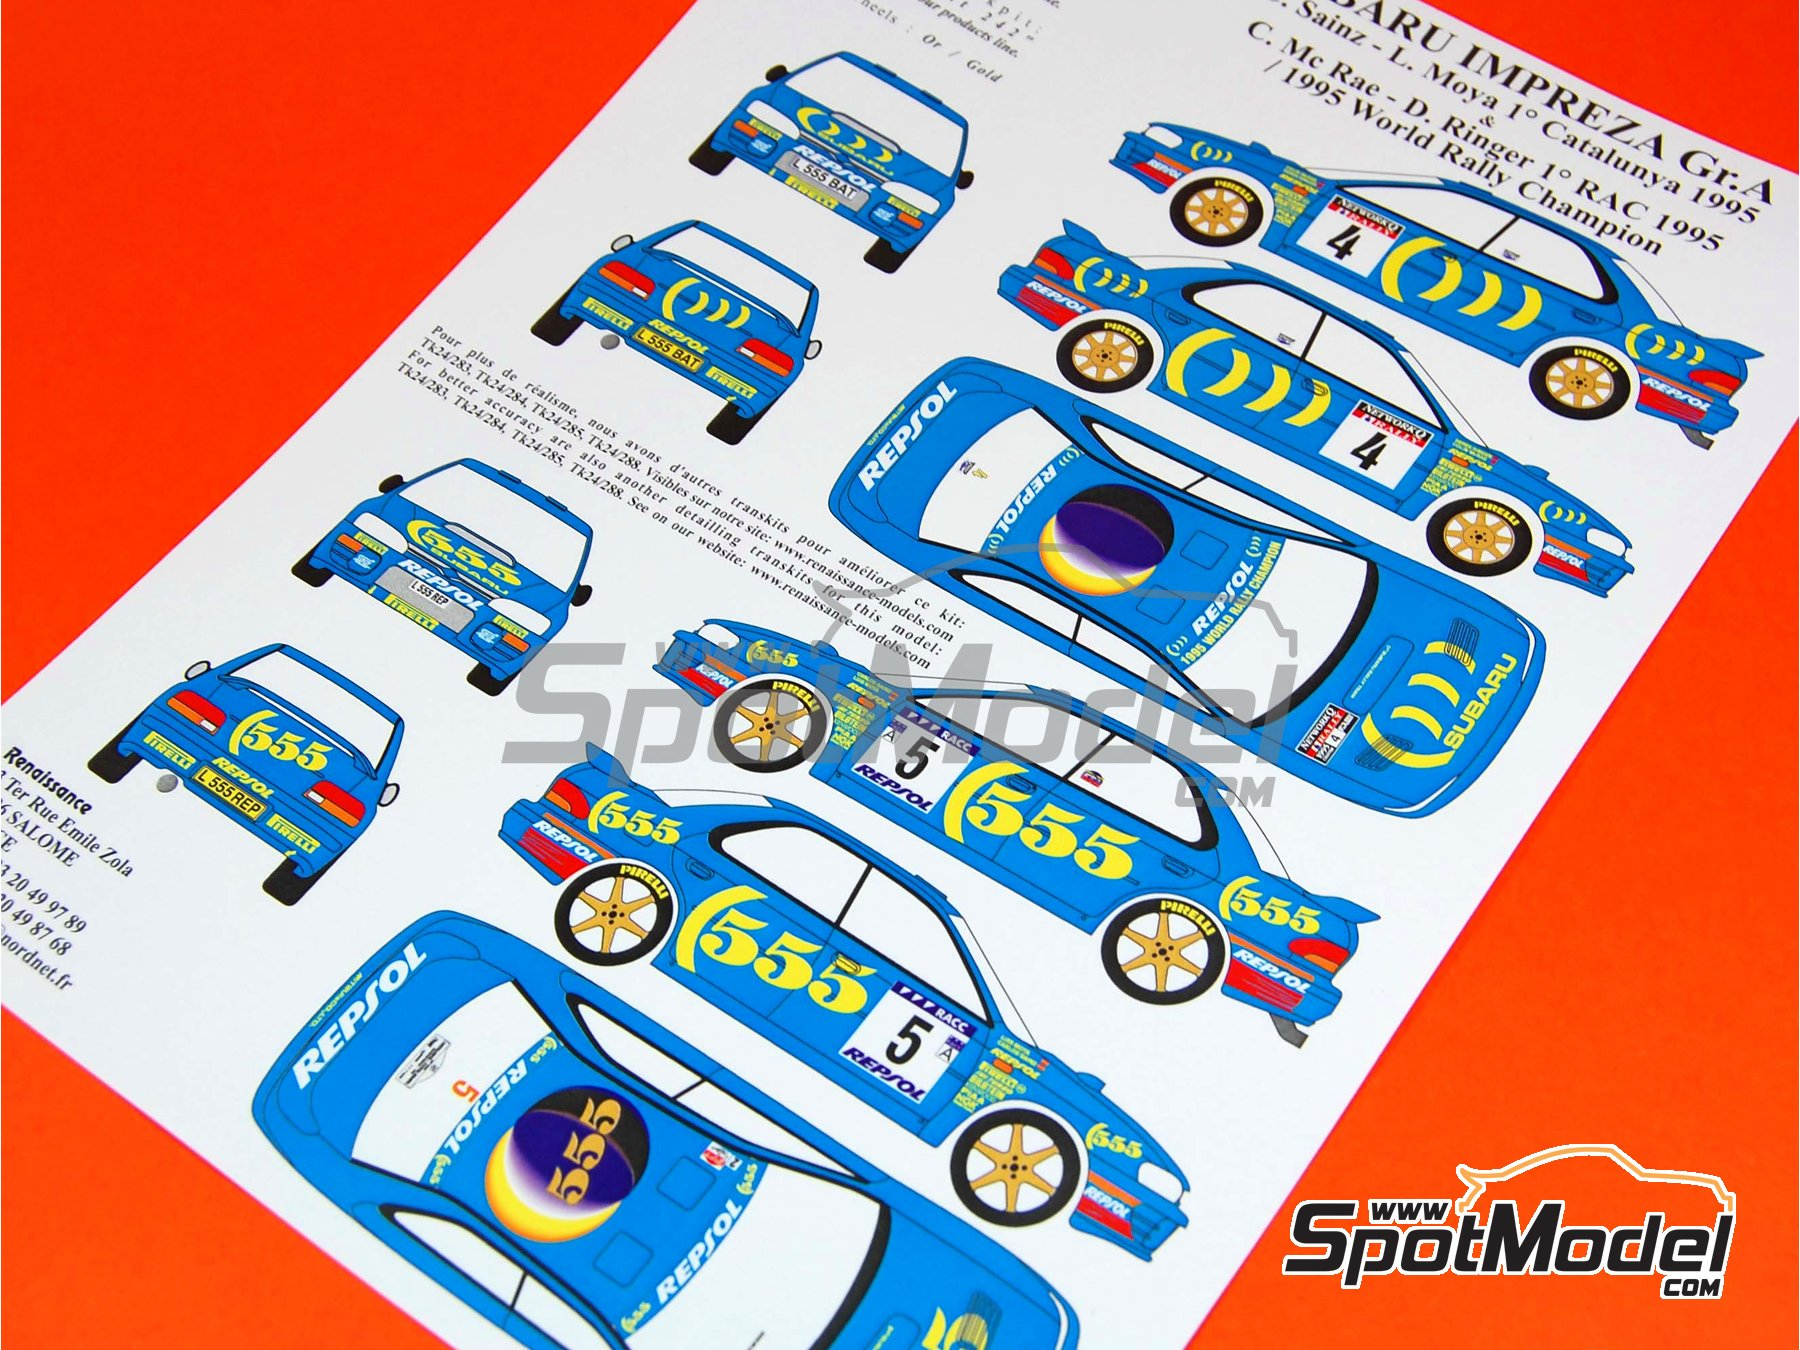 Image 1: Subaru Impreza 555 Group A Repsol - Catalunya Costa Dorada RACC Rally, Great Britain RAC Rally 1995 | Marking / livery in 1/24 scale manufactured by Renaissance Models (ref. TK24-289)